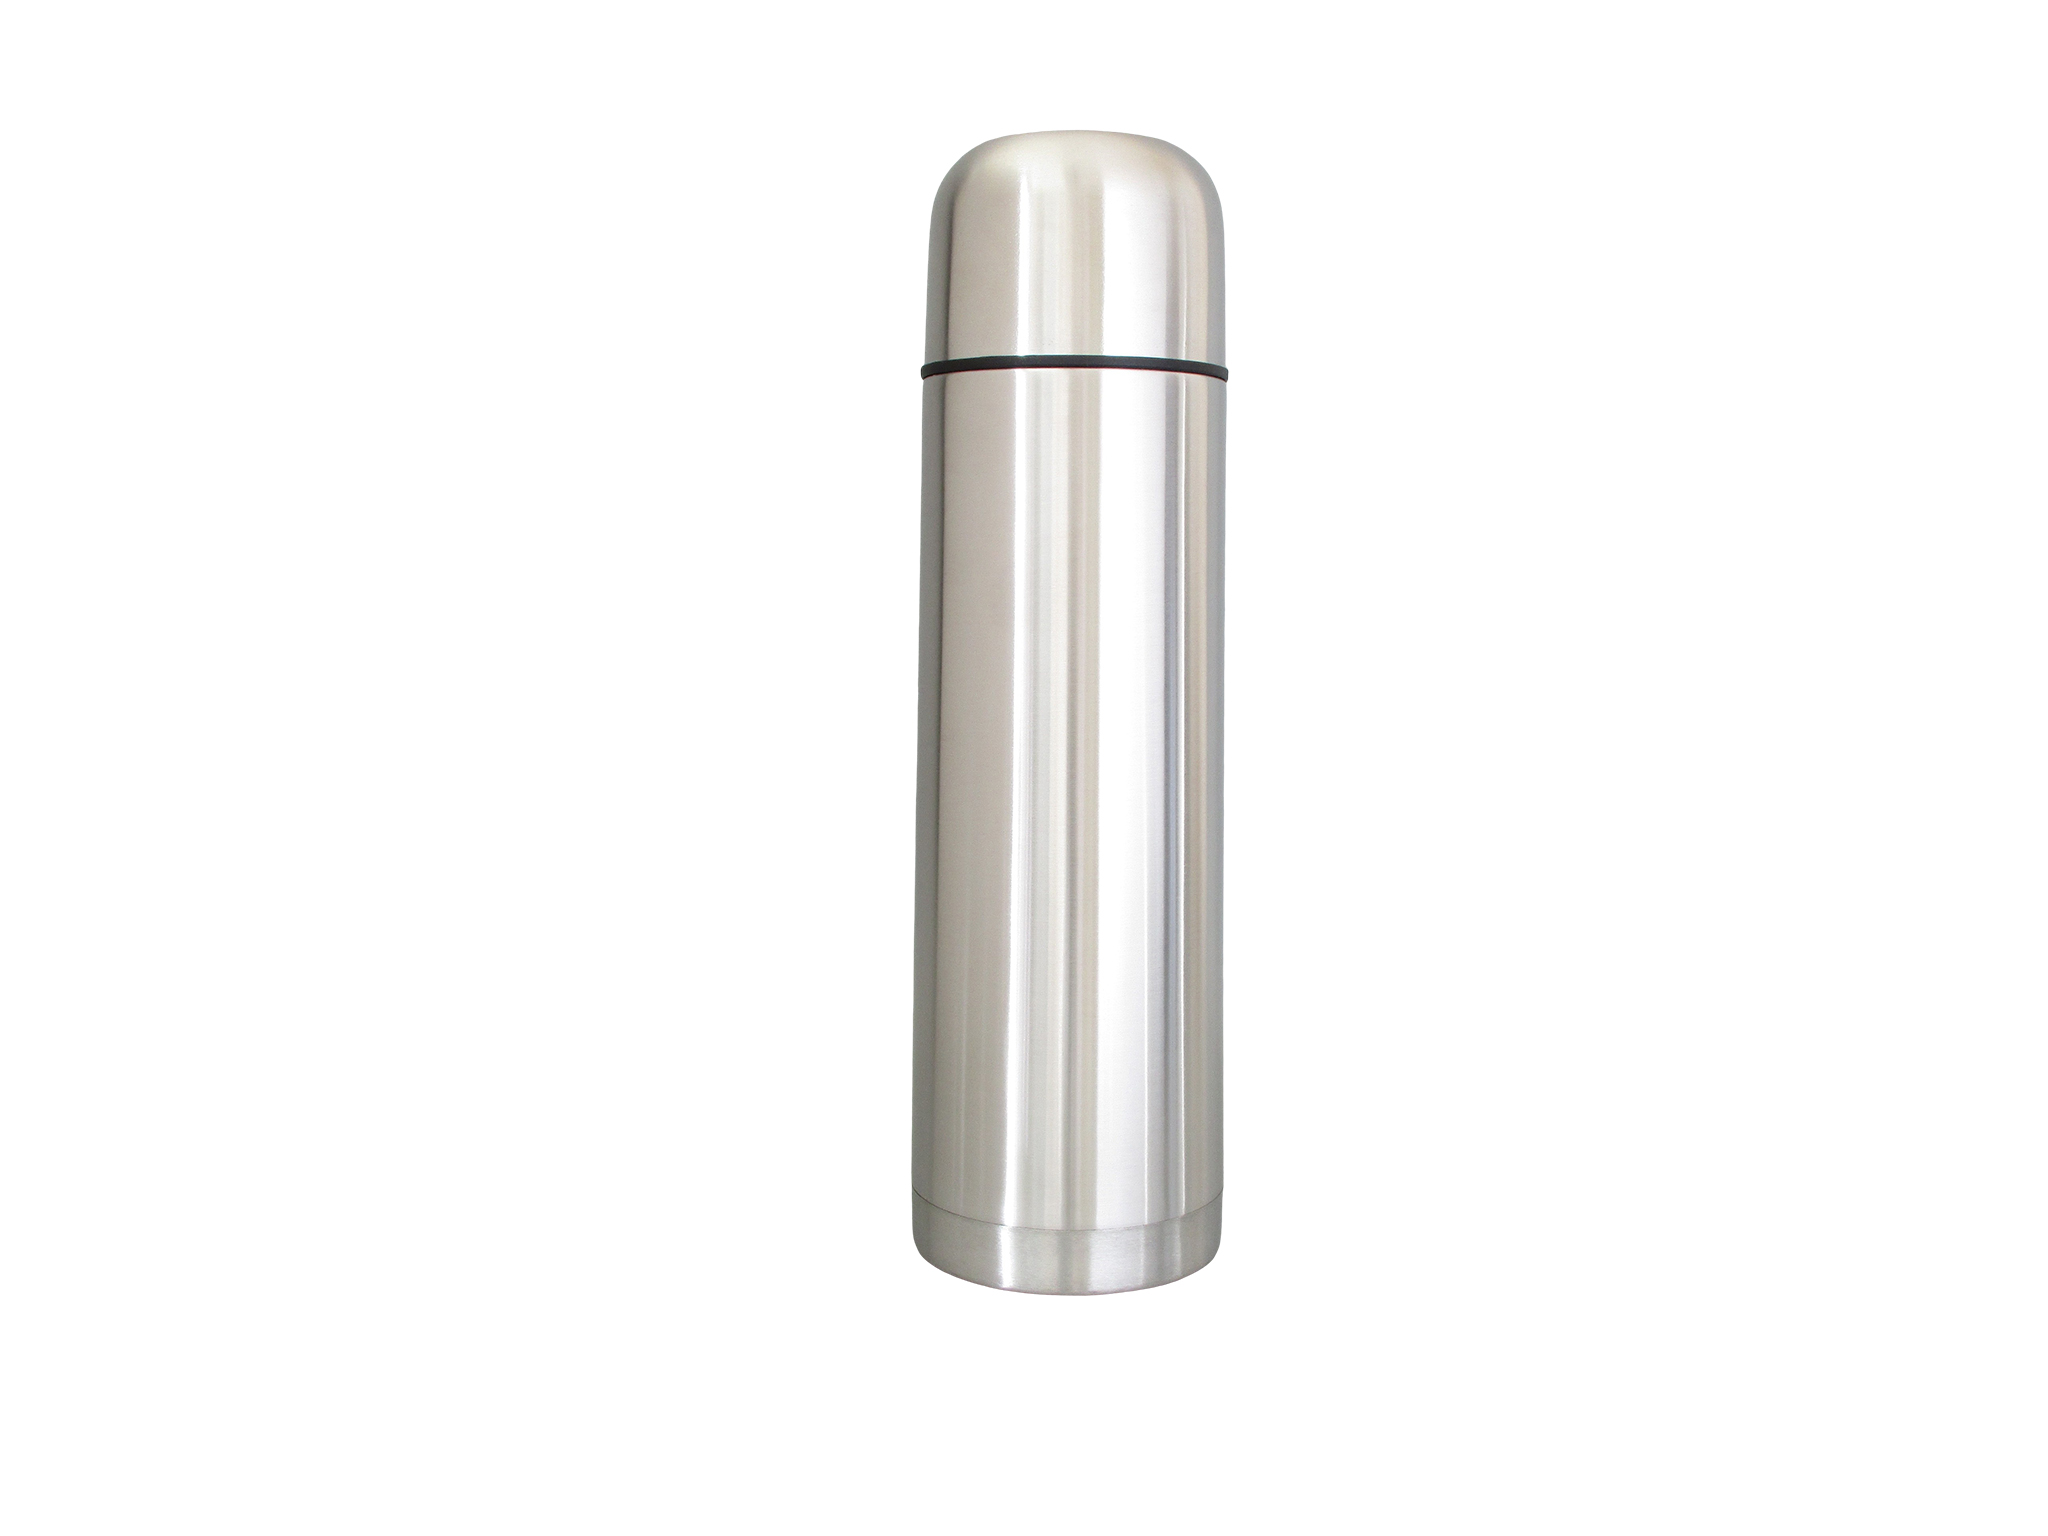 TSS10LC-S02 - Bouteille isoth. inox LOW COST 1.0 L (b. à visser) - Isobel Silver Line